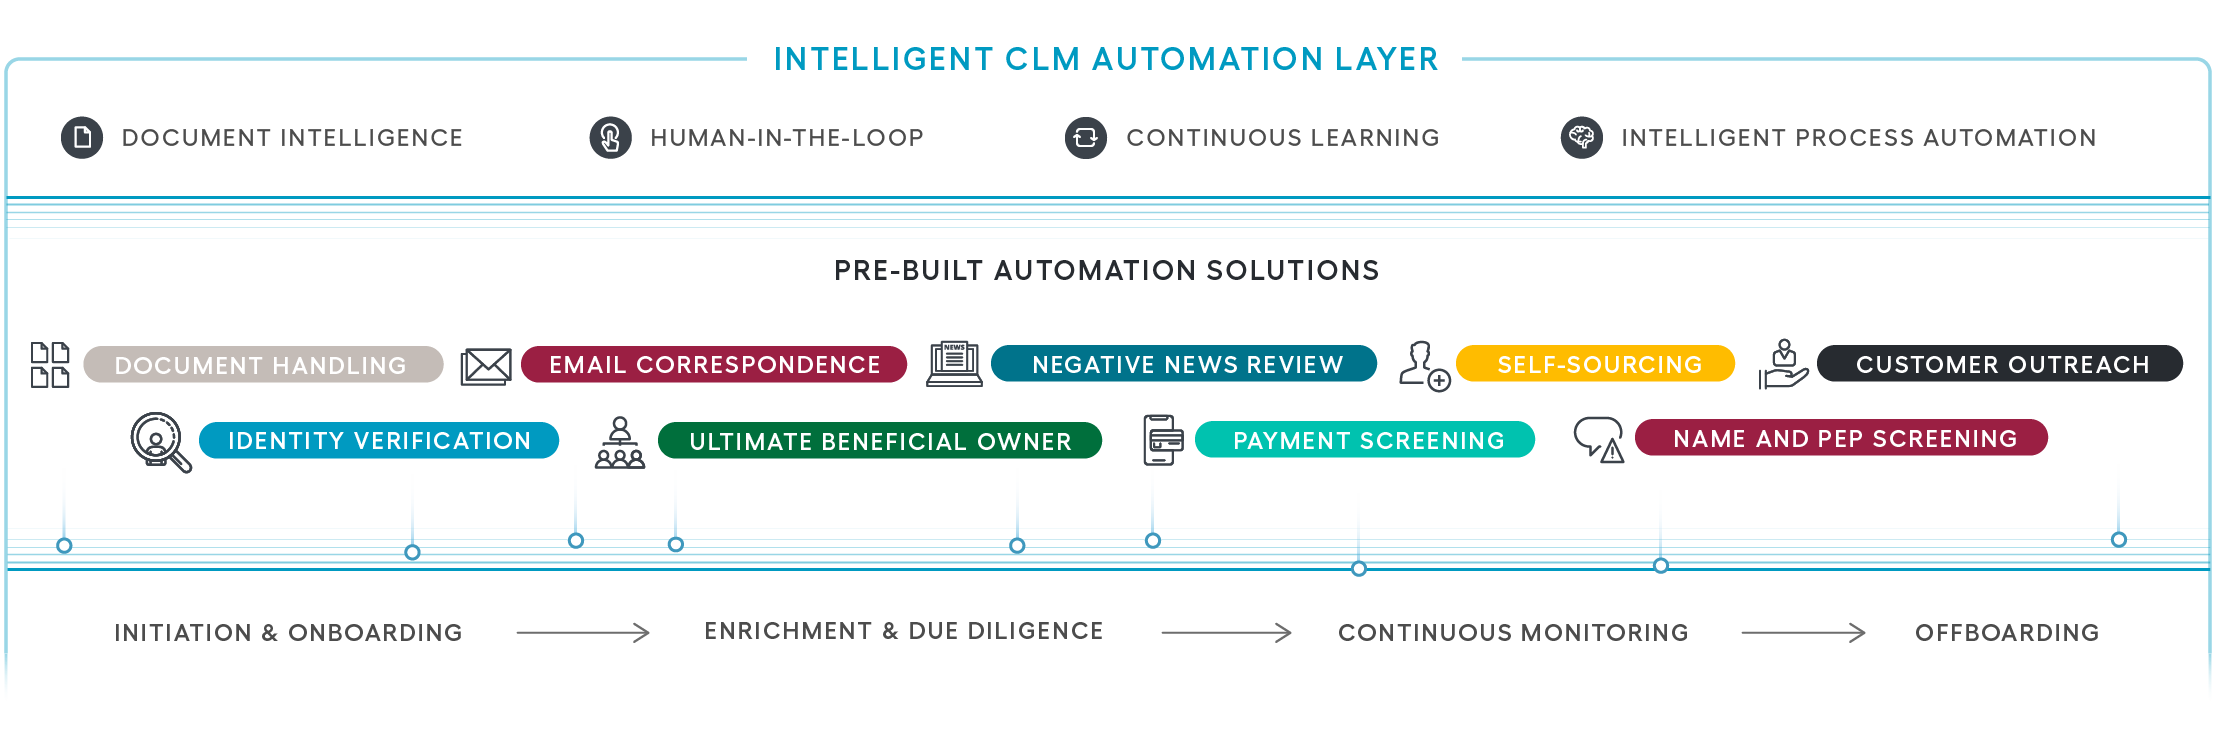 customer lifecycle management intelligent automation layer